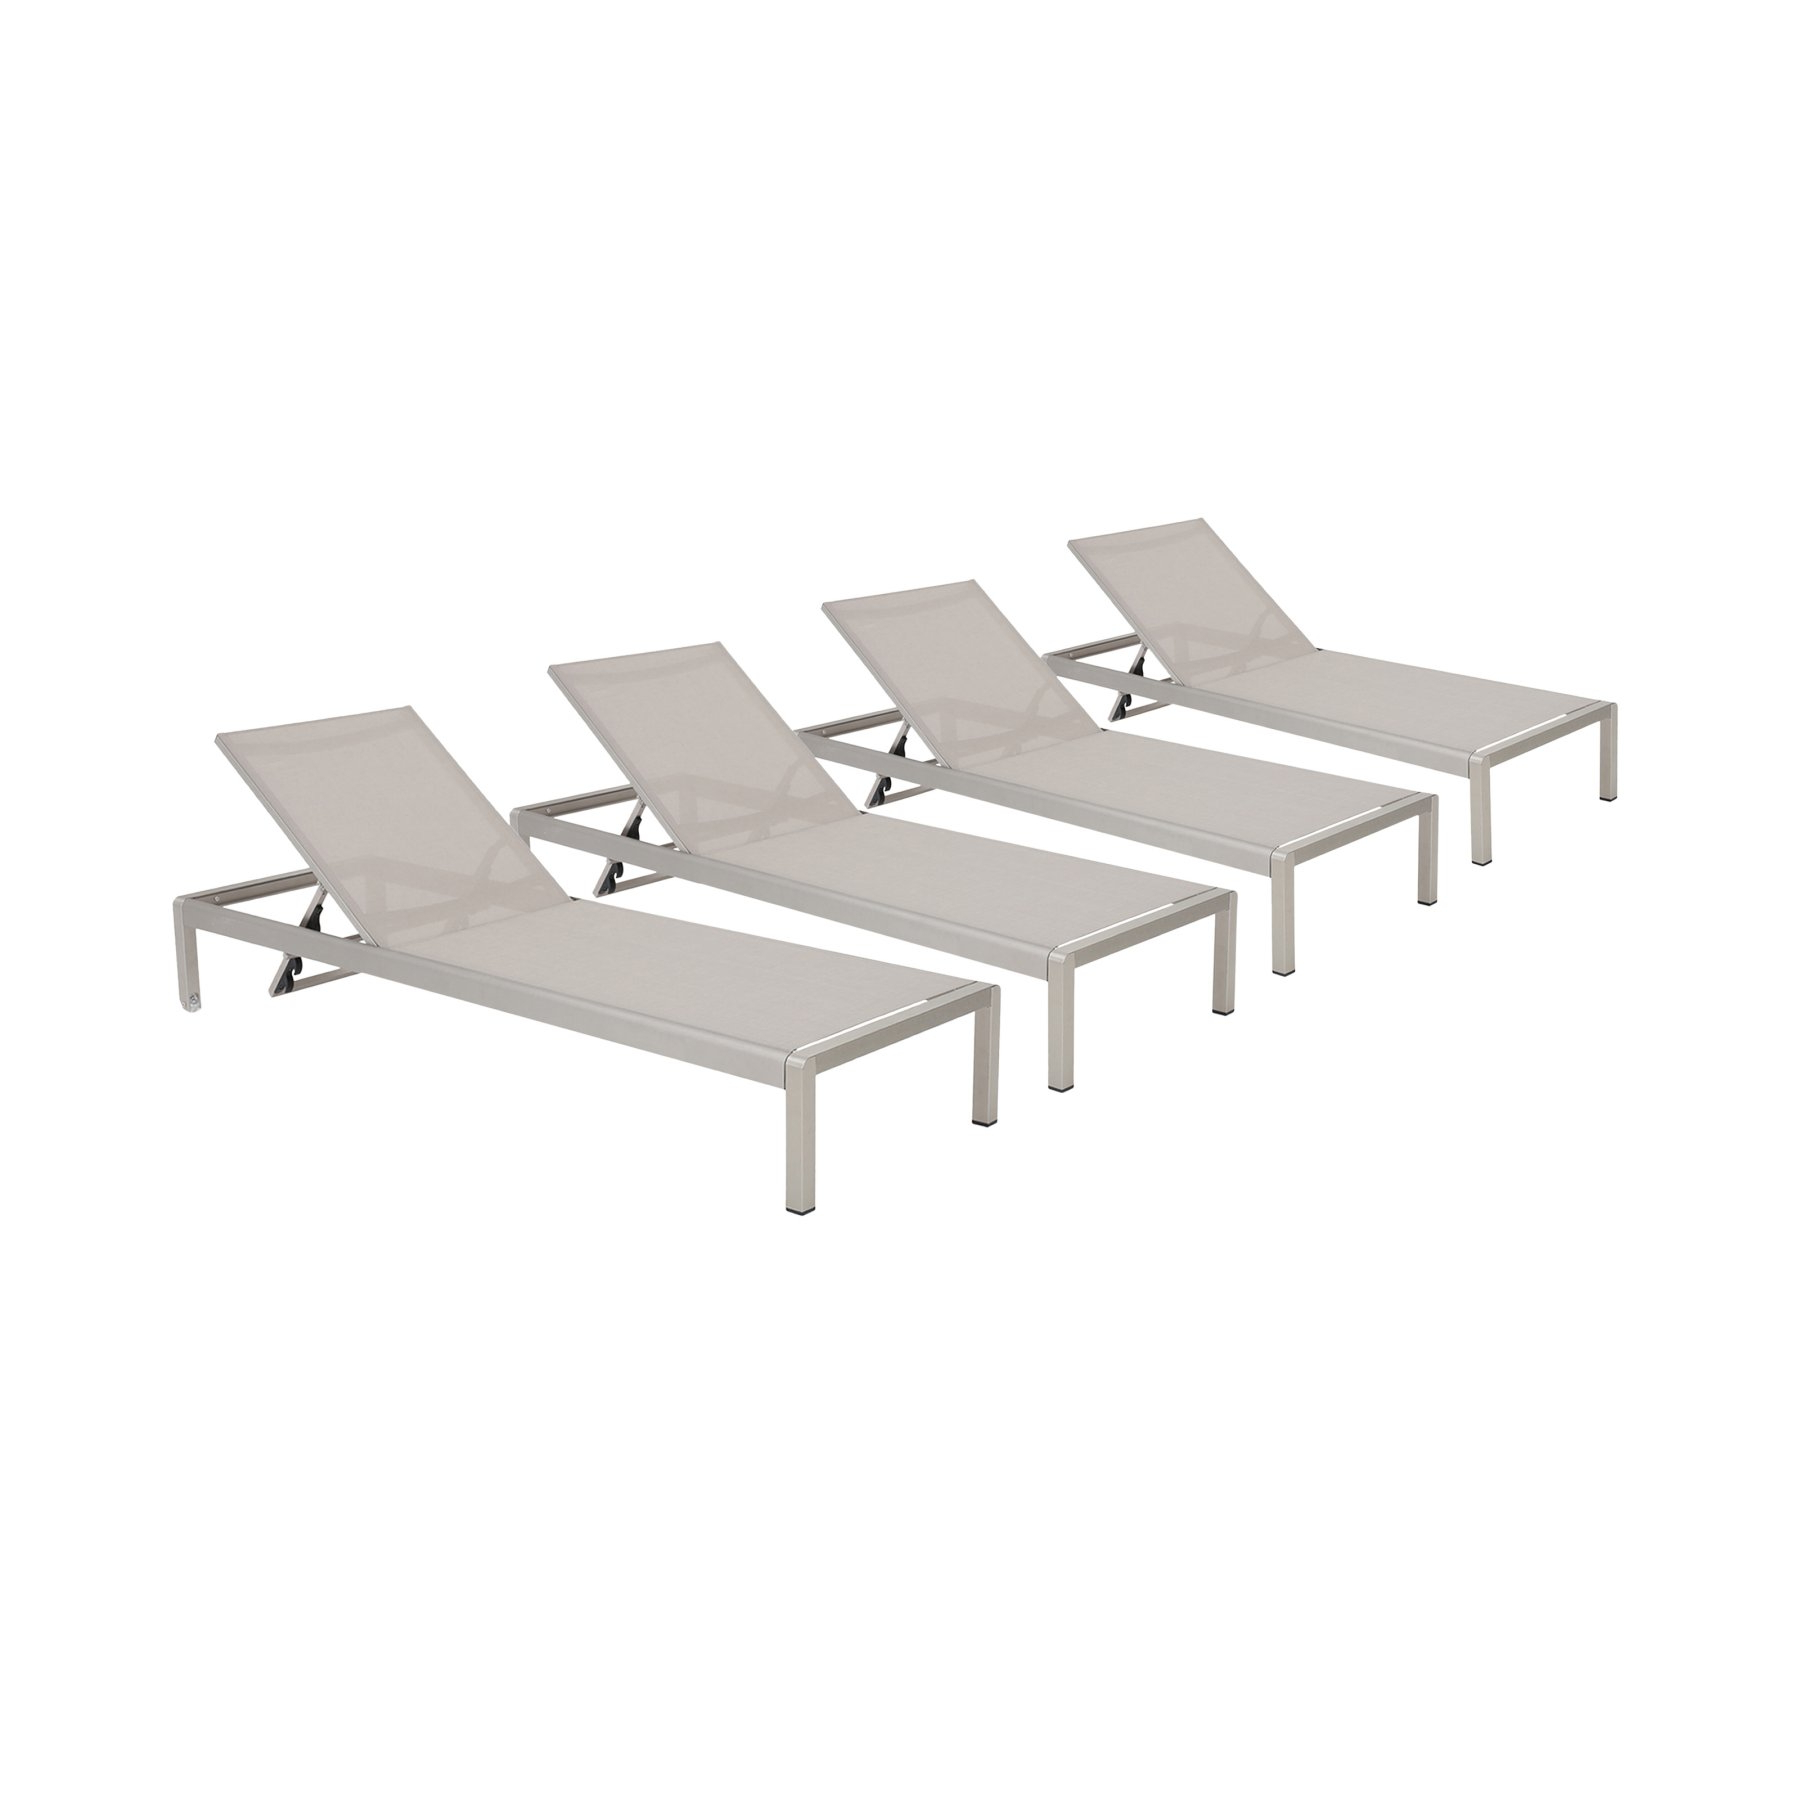 Outdoor Best Selling Home Cape Coral Mesh Patio Chaise For Well Known Cape Coral Outdoor Aluminum Mesh Chaise Lounges (Gallery 22 of 25)